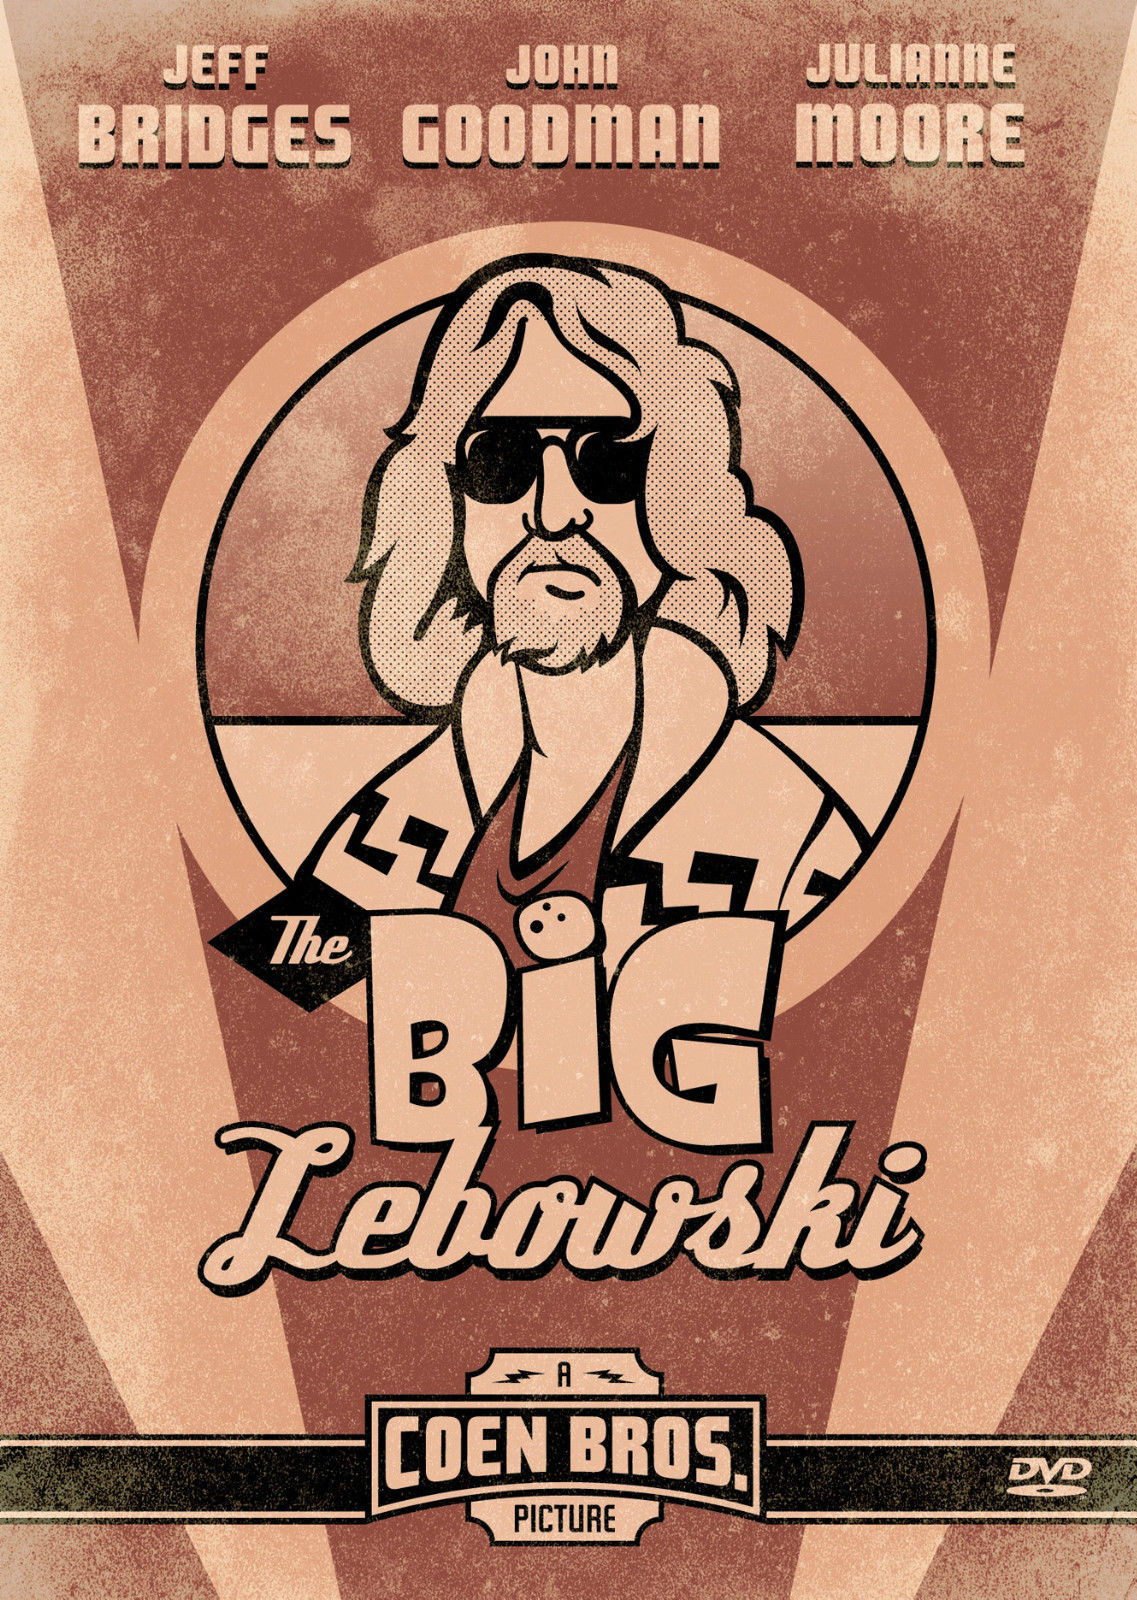 72365-THE-BIG-LEBOWSKI-Cohen-Brothers-Jeff-Bridges-Wall-Print-Poster-Affiche